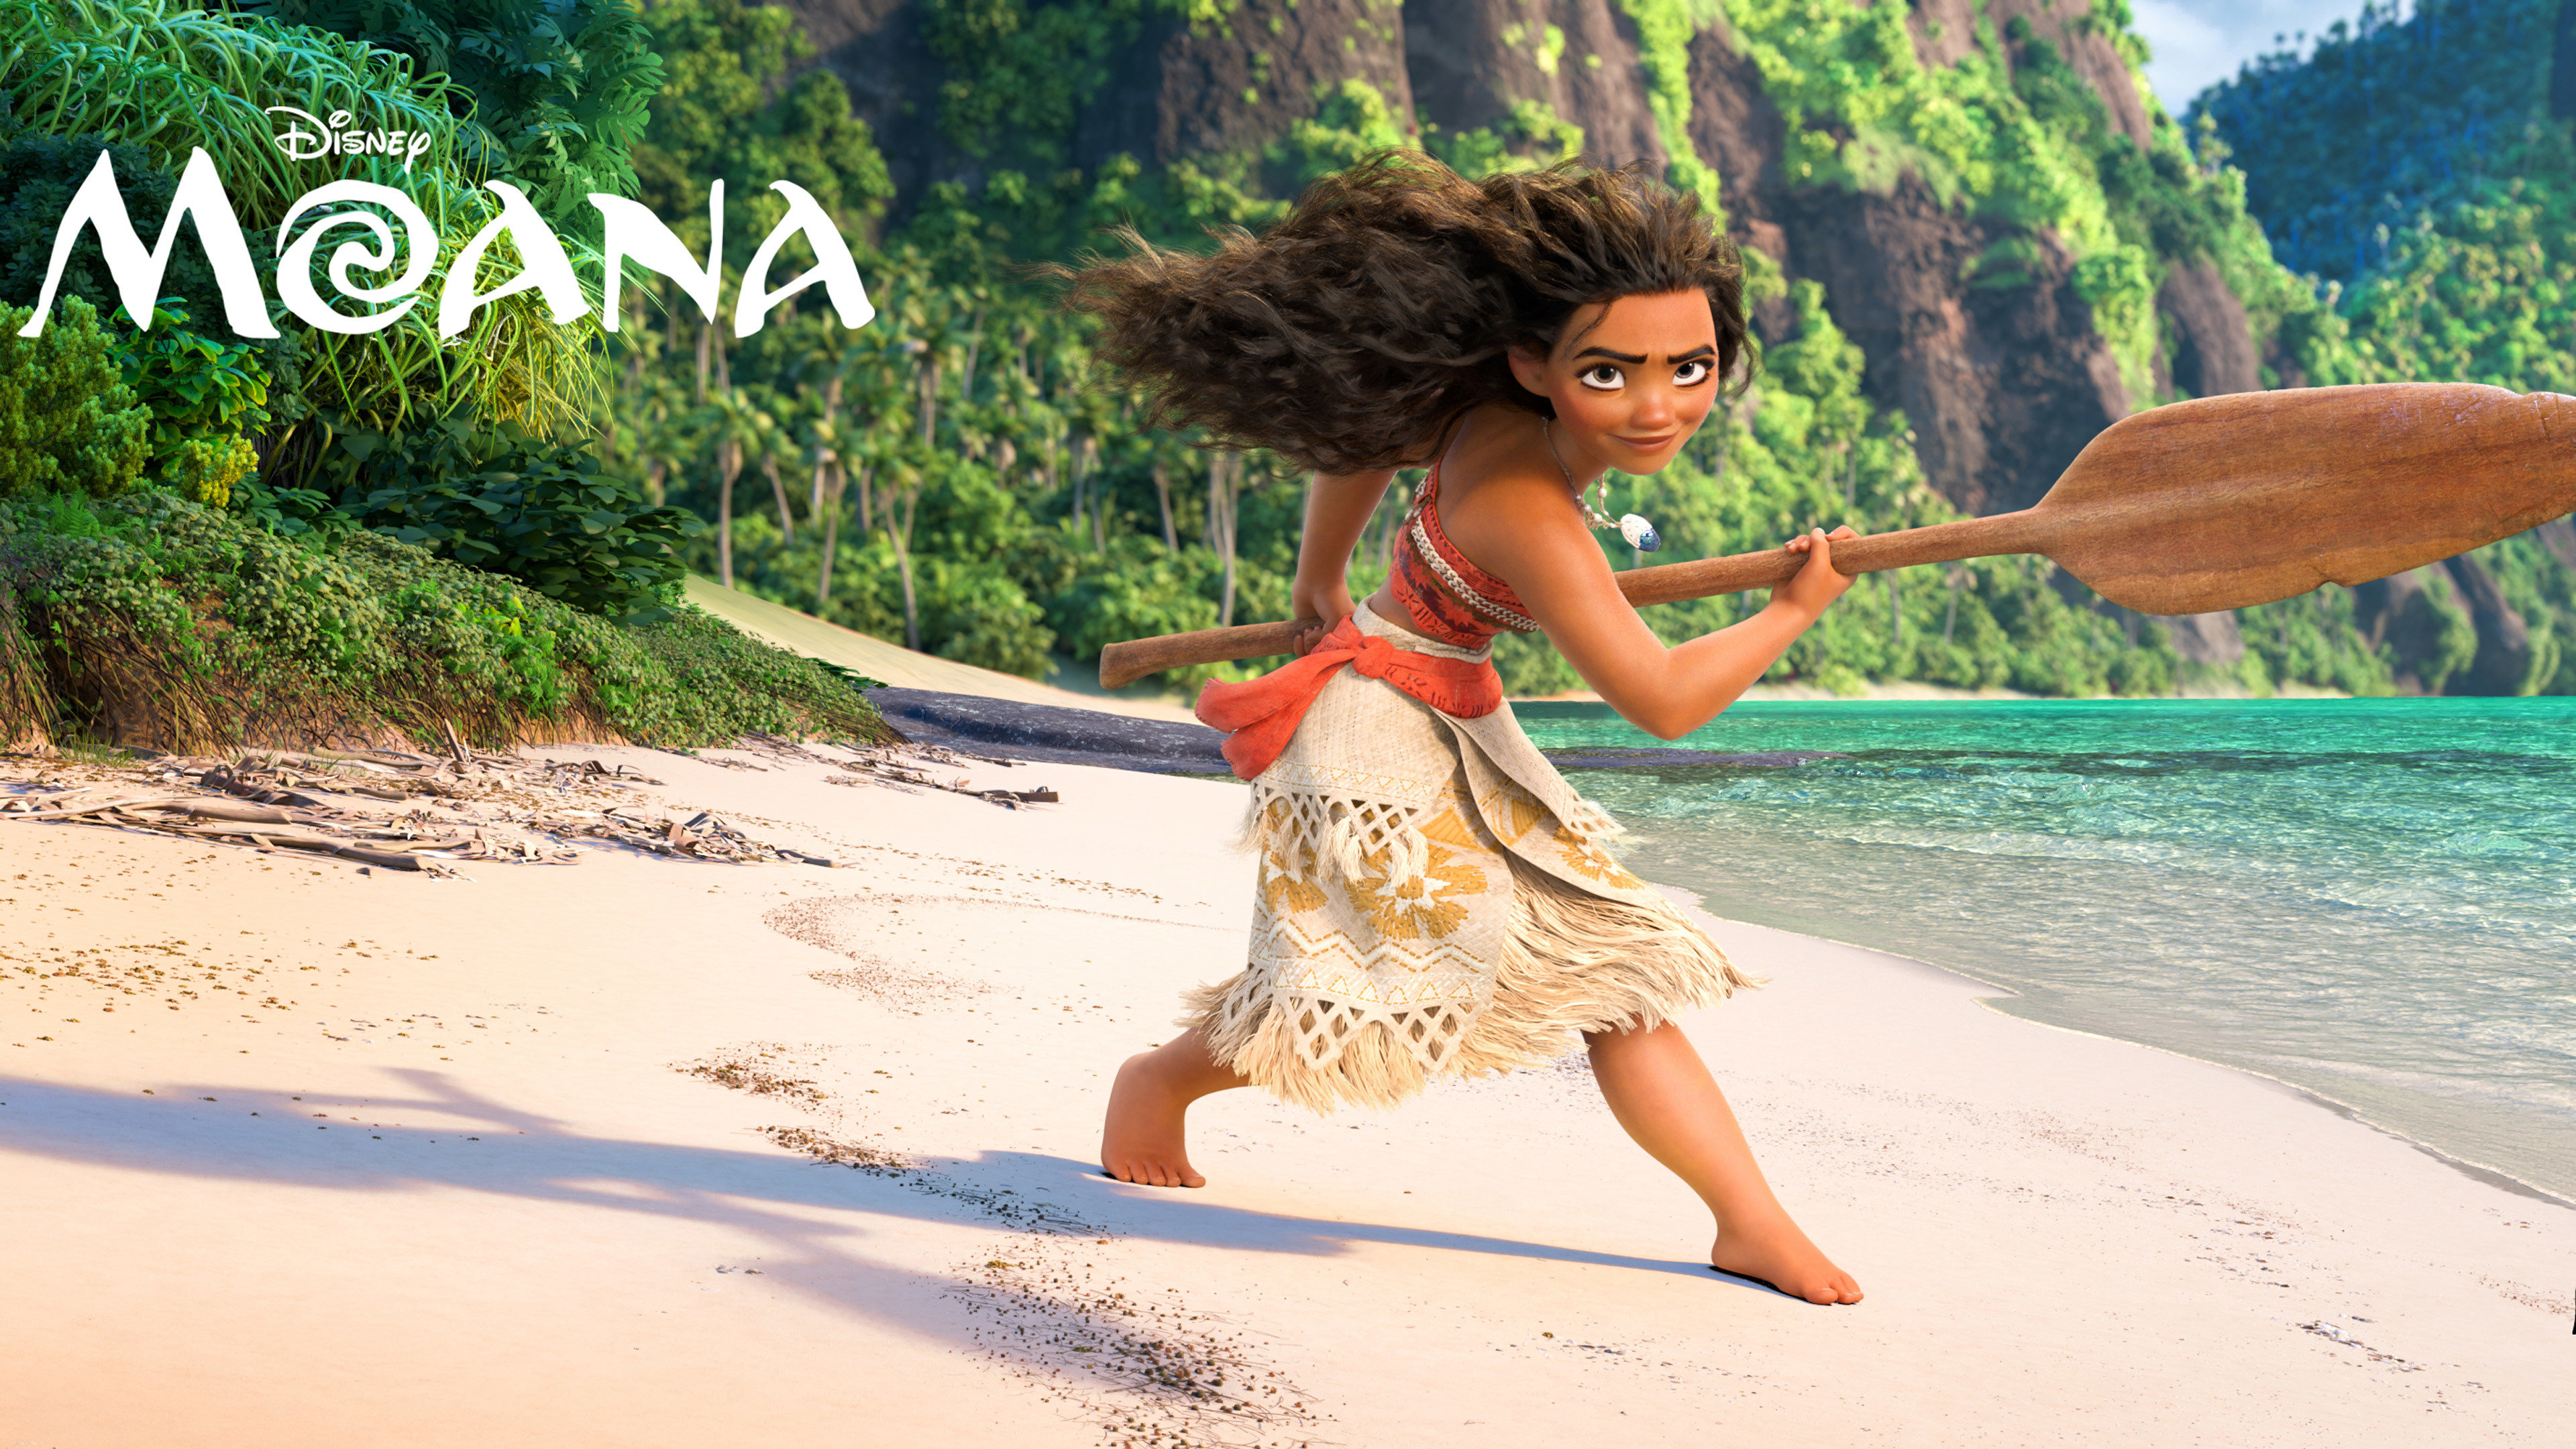 https://img3.goodfon.ru/original/3840x2160/c/be/moana-moana-multfilm.jpg